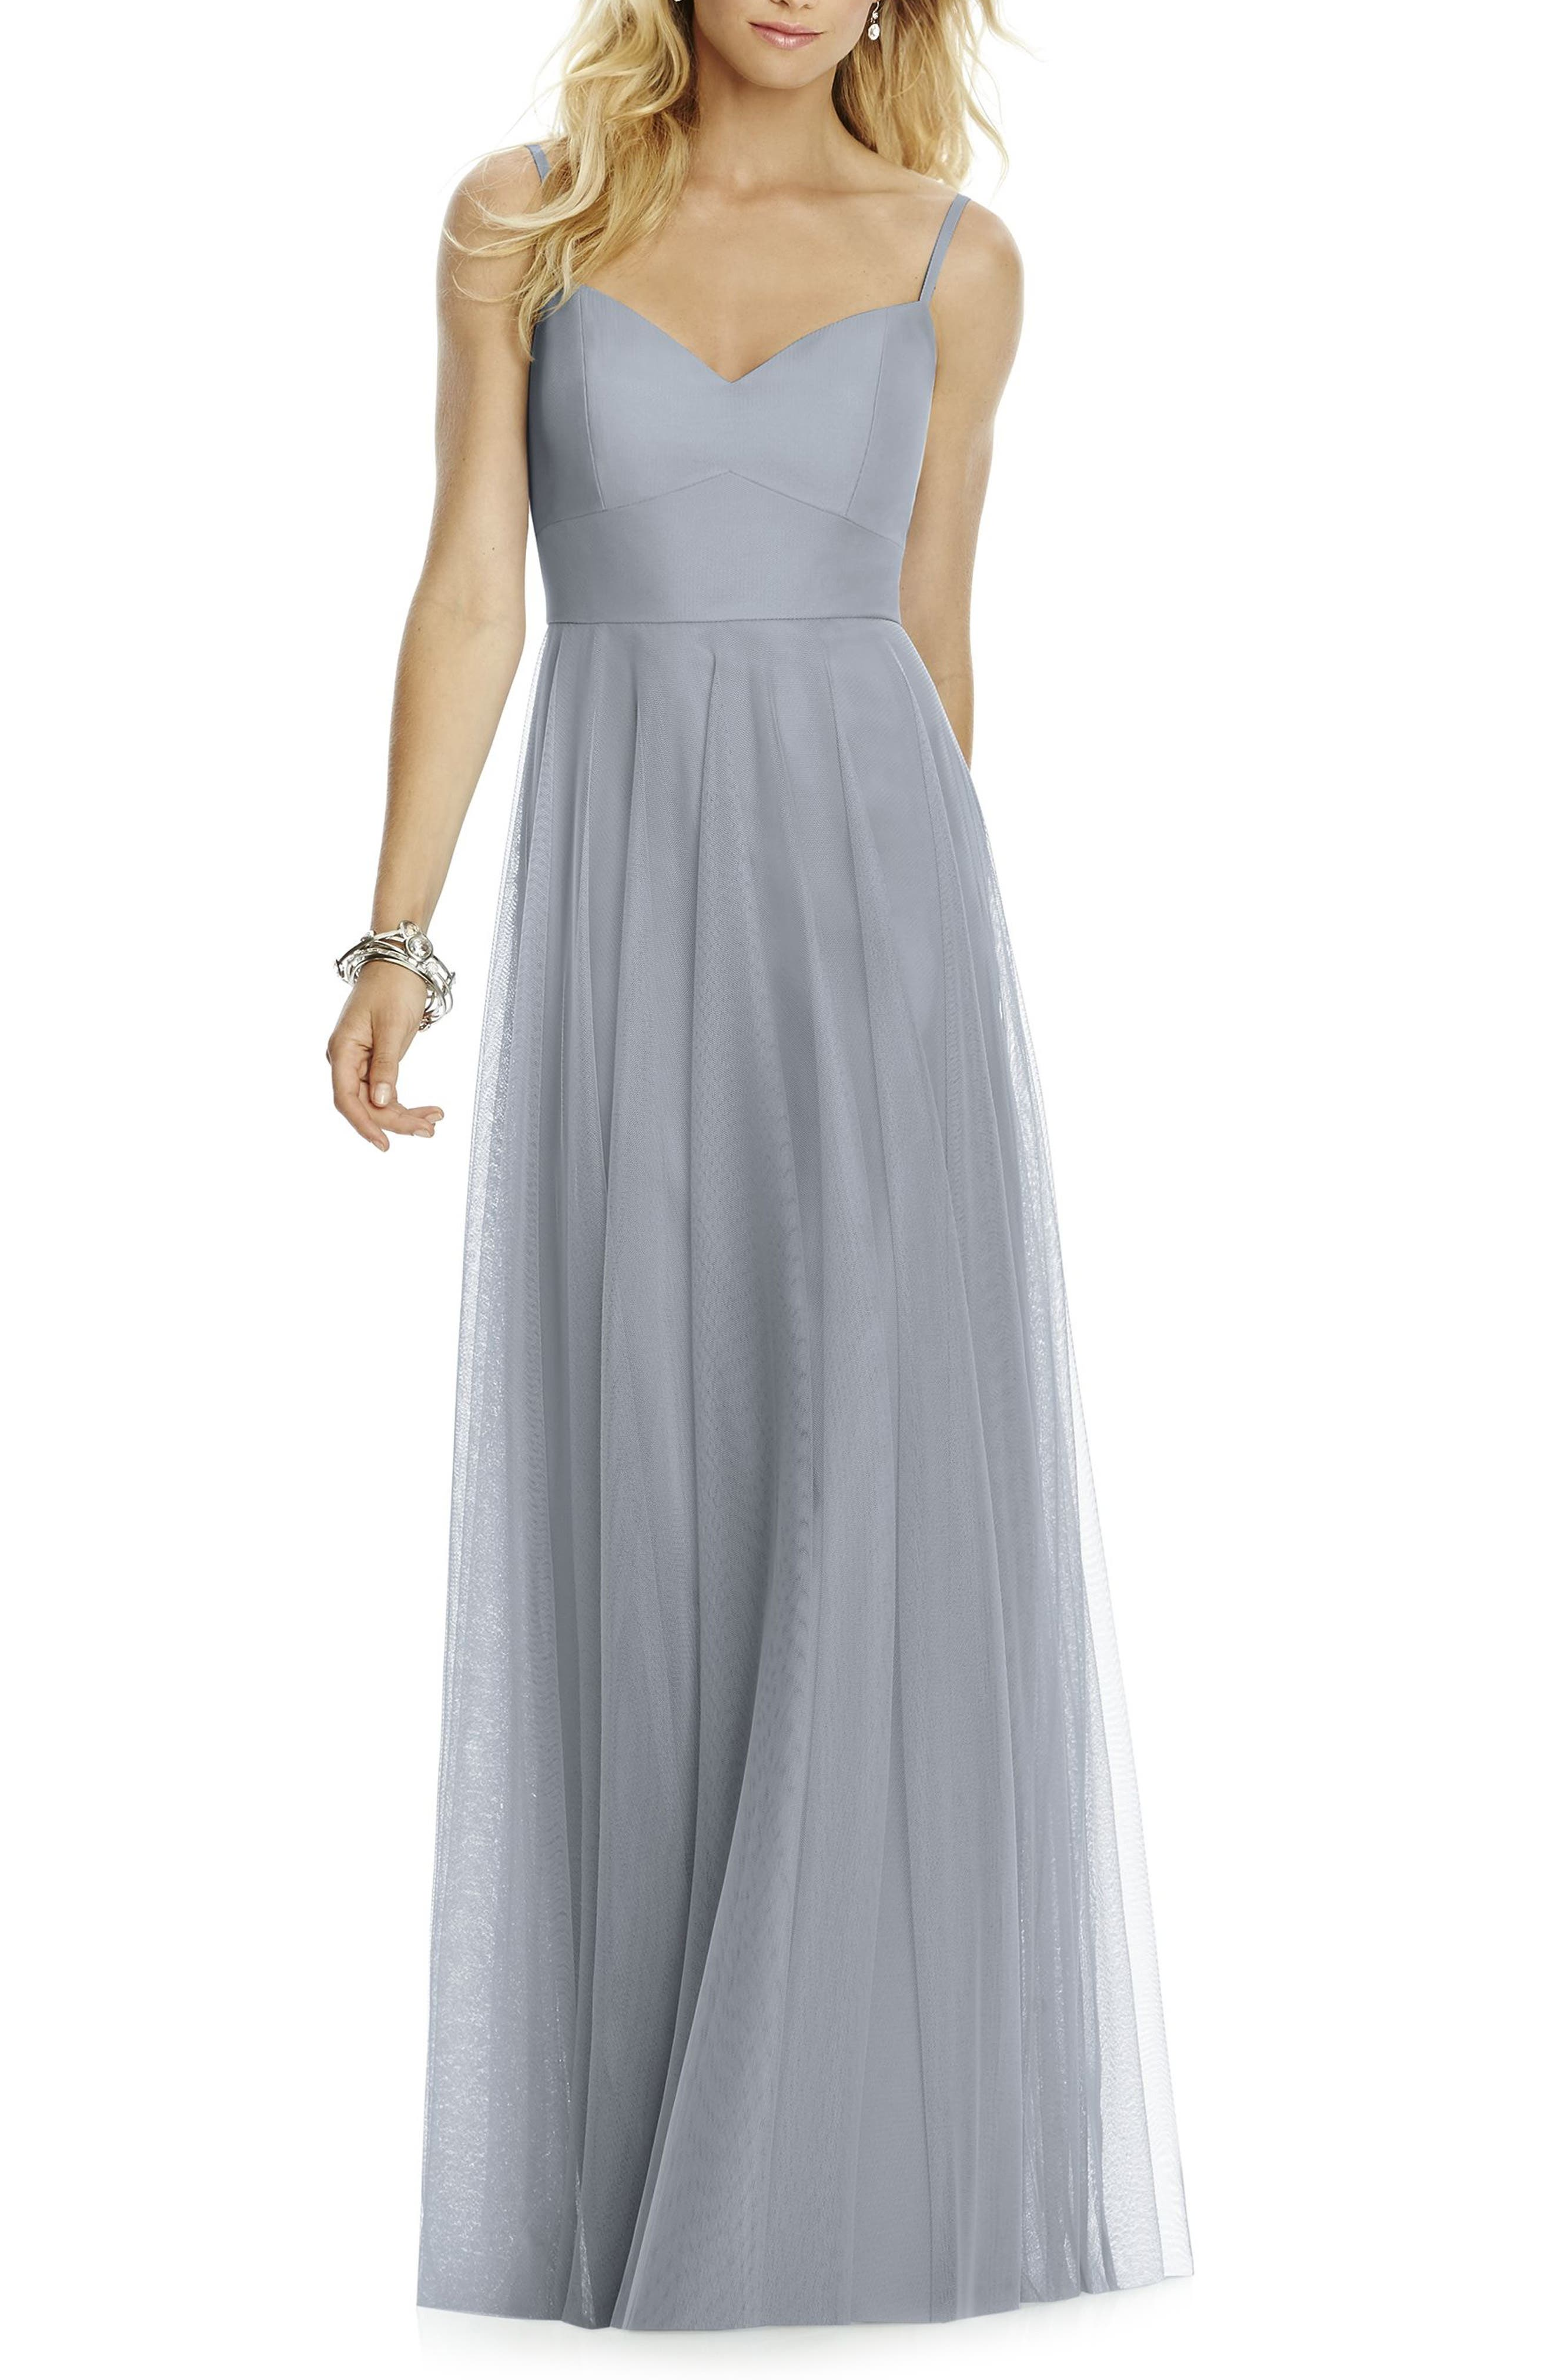 After Six Sleeveless Tulle A-Line Gown, 8 (similar to 1) - Grey